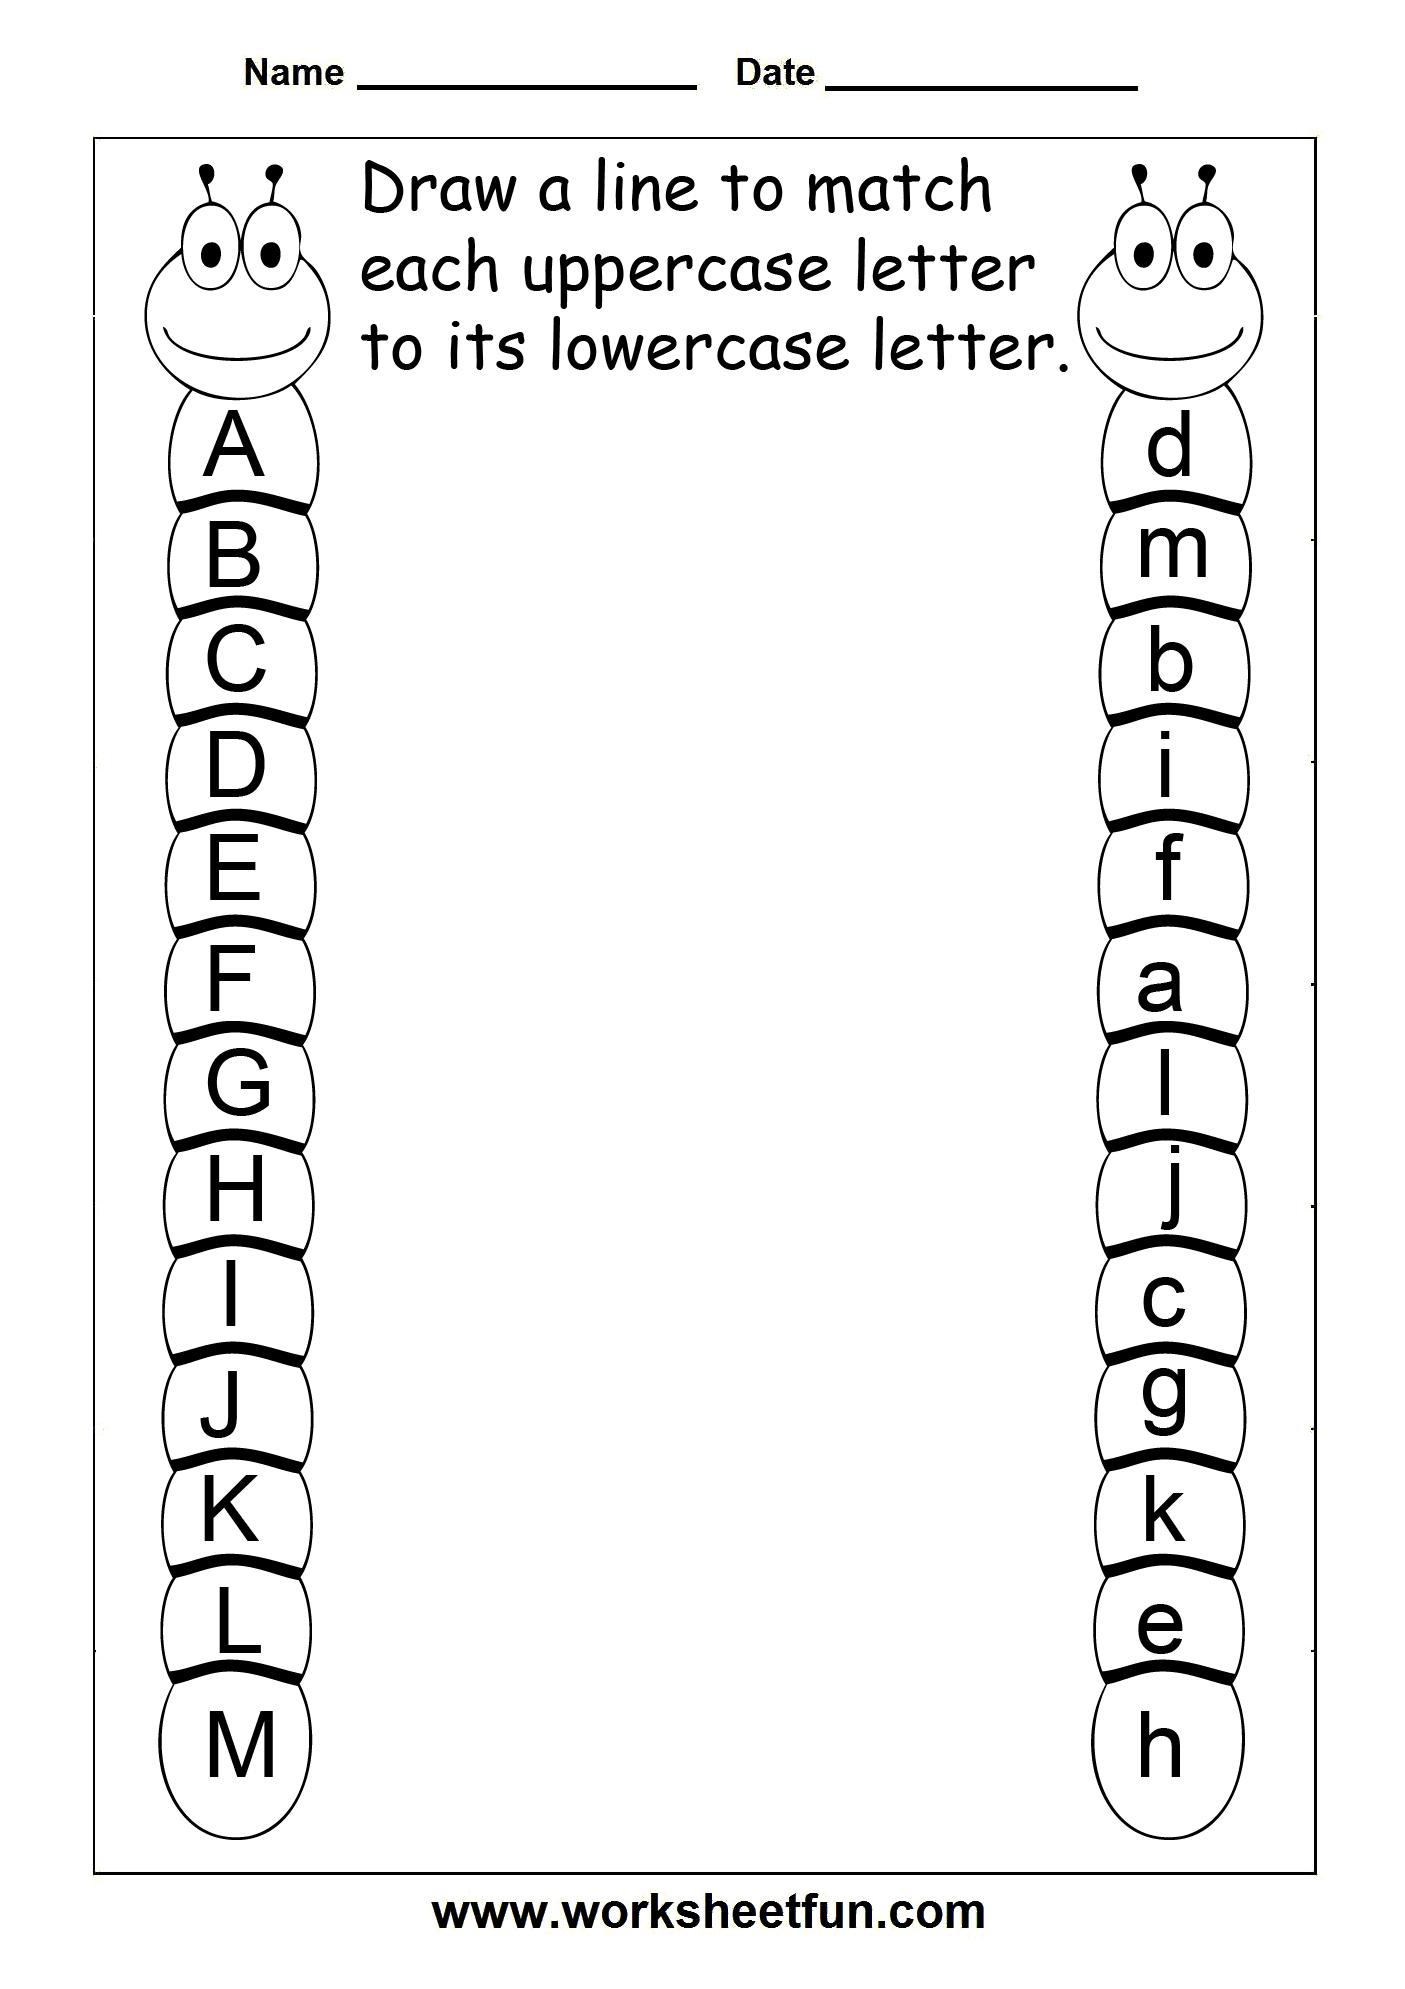 Weirdmailus  Surprising  Images About Work Worksheet On Pinterest  Hidden Pictures  With Goodlooking  Images About Work Worksheet On Pinterest  Hidden Pictures Color By Numbers And Puzzles With Delightful Learning Roman Numerals Worksheet Also Science Activity Worksheets In Addition Cyber Bullying Worksheet And Prevailing Wage Worksheet As Well As Fraction Quiz Worksheet Additionally Grammar Worksheets For First Grade From Pinterestcom With Weirdmailus  Goodlooking  Images About Work Worksheet On Pinterest  Hidden Pictures  With Delightful  Images About Work Worksheet On Pinterest  Hidden Pictures Color By Numbers And Puzzles And Surprising Learning Roman Numerals Worksheet Also Science Activity Worksheets In Addition Cyber Bullying Worksheet From Pinterestcom